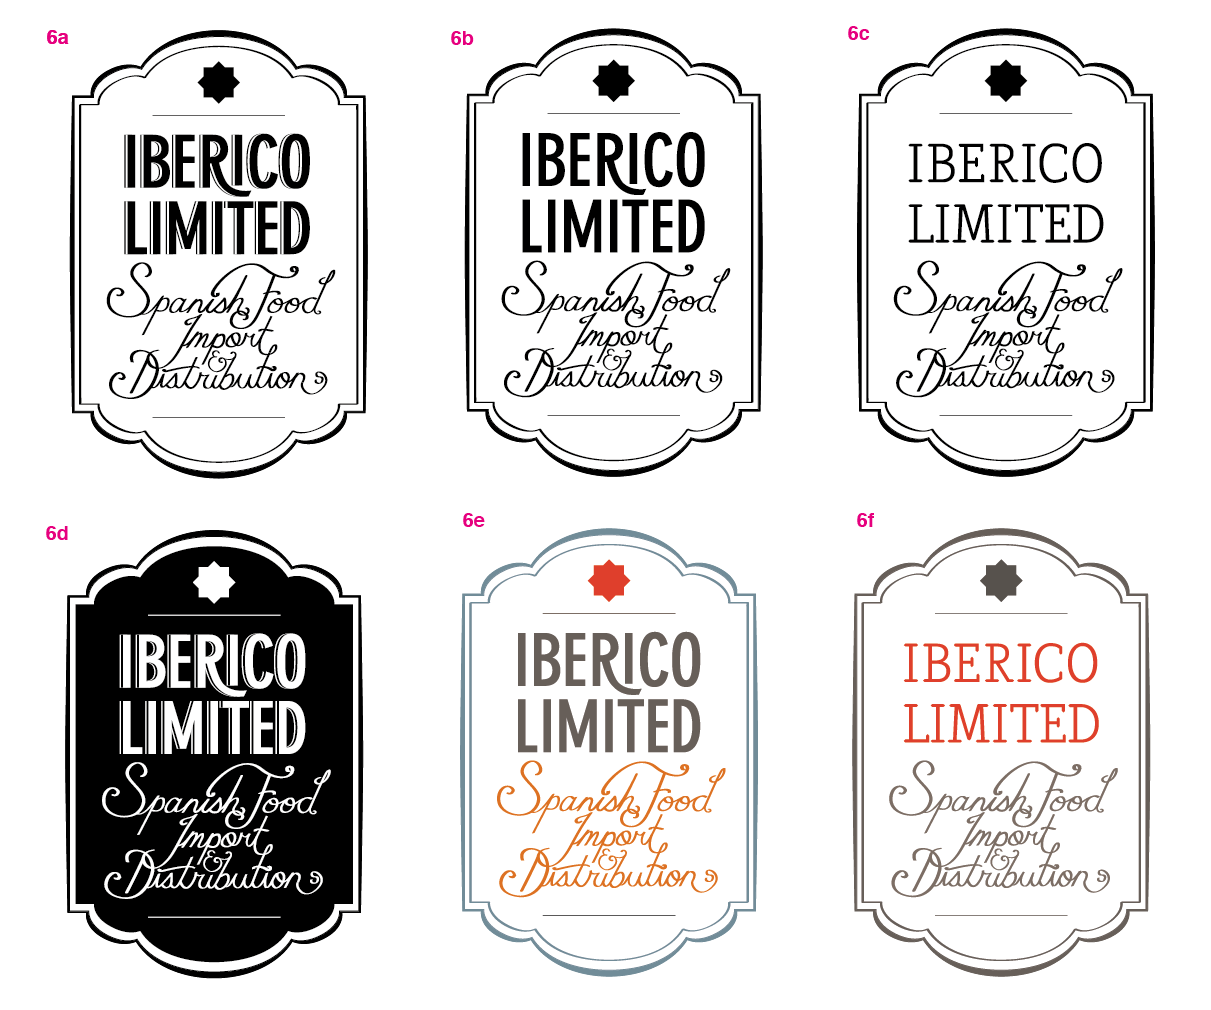 Logo for Iberico Limited - image 12 - student project